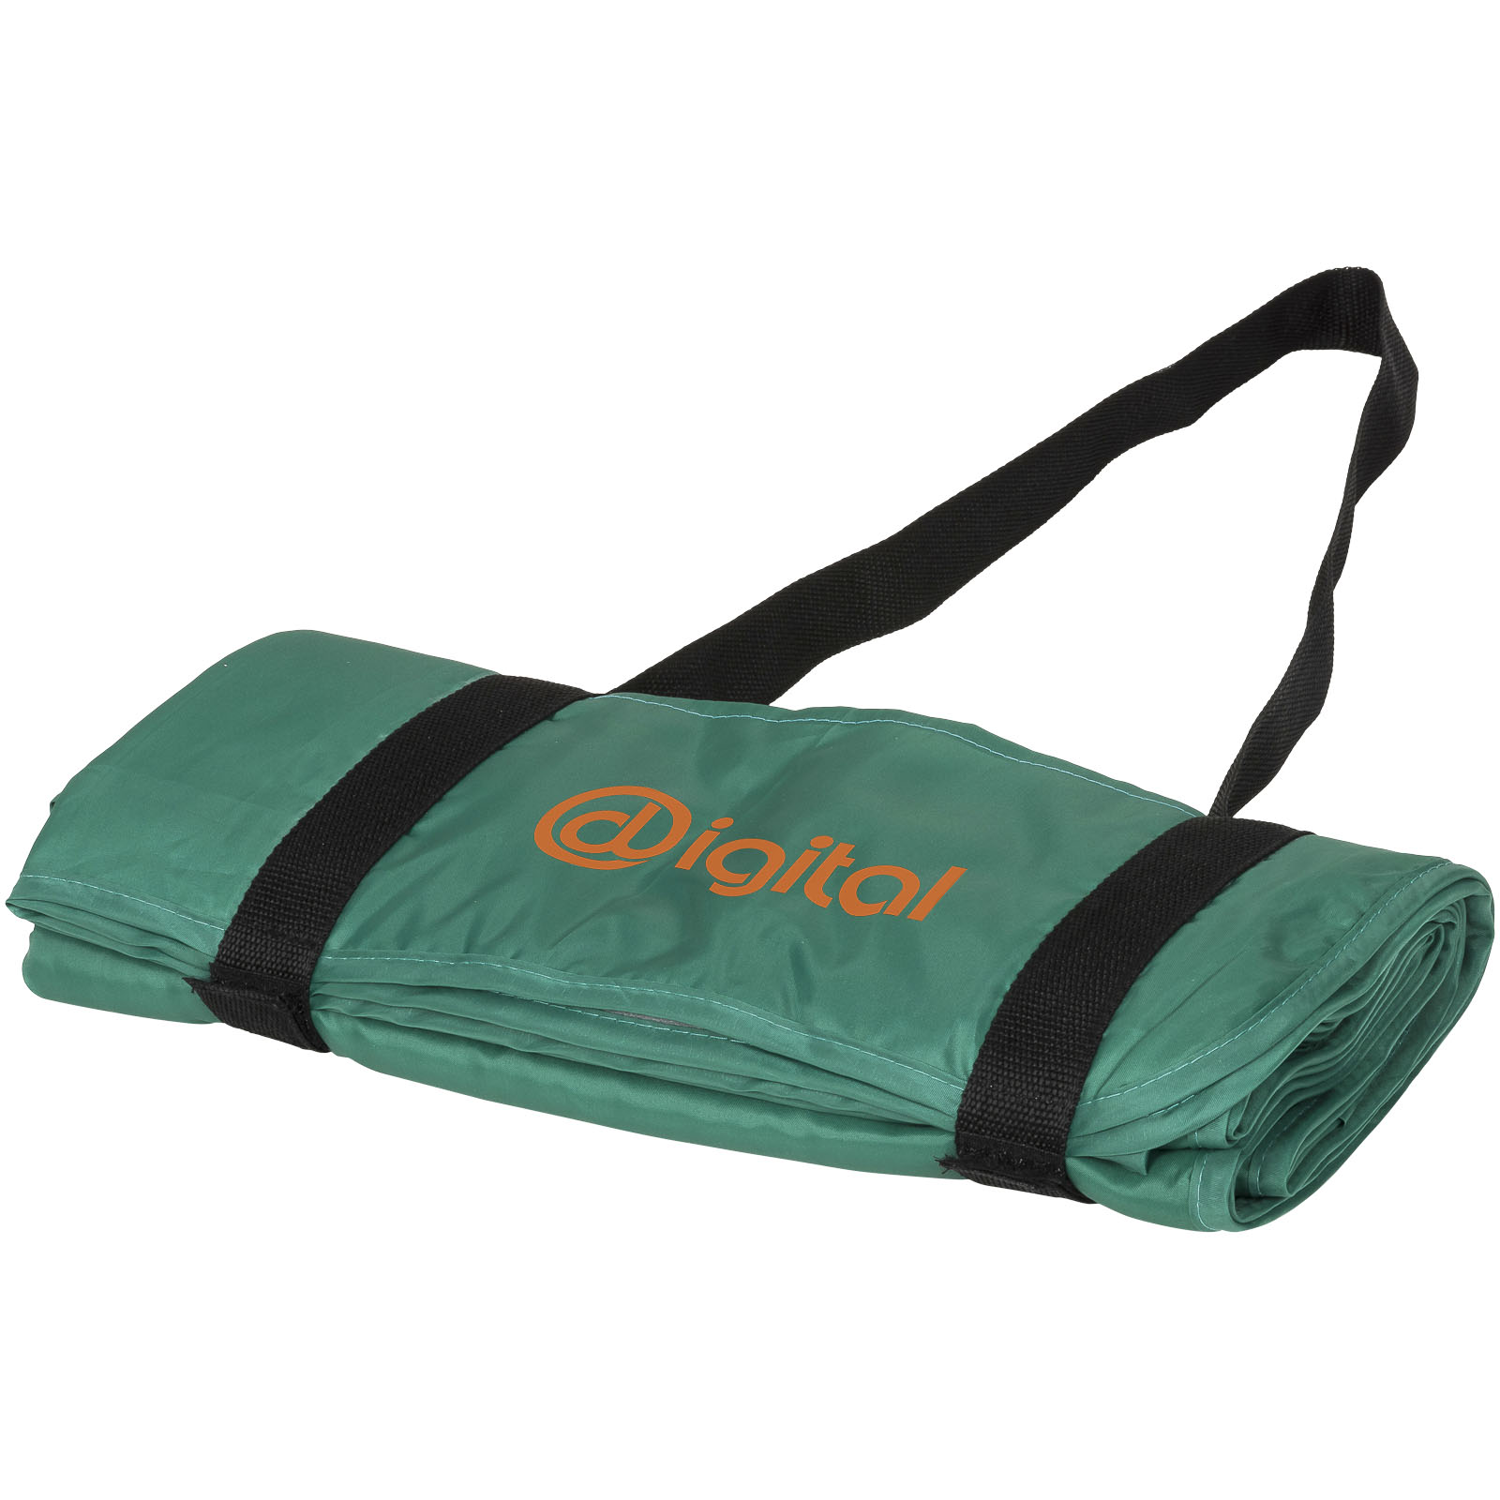 Roler Picnic Plaid With Carrying Strap